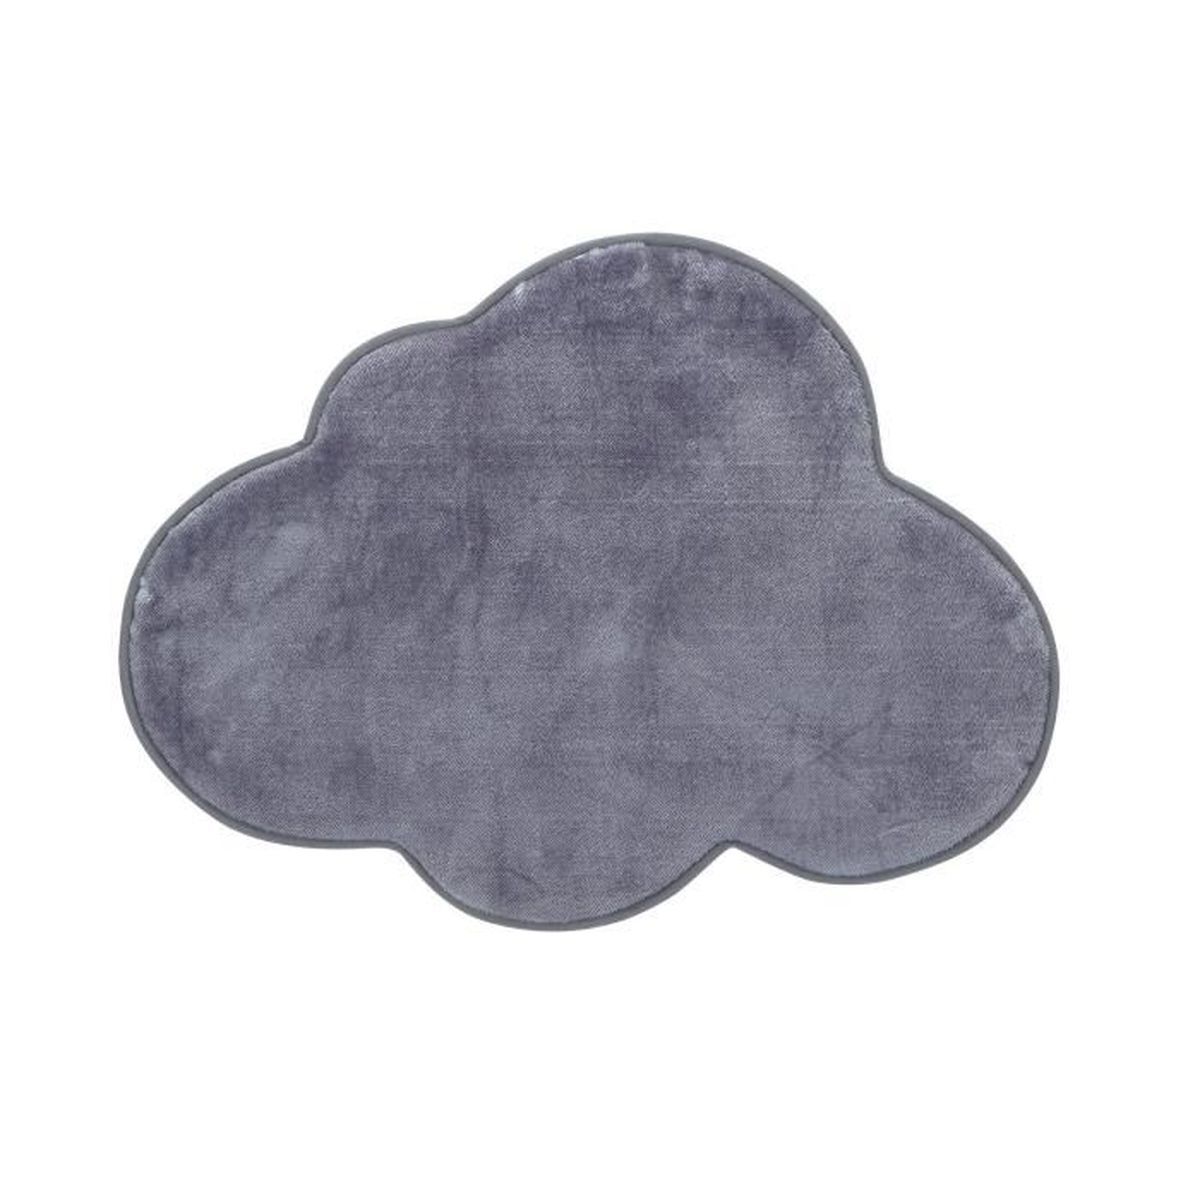 nuage sweet tapis pour chambre enfant achat vente tapis cdiscount. Black Bedroom Furniture Sets. Home Design Ideas